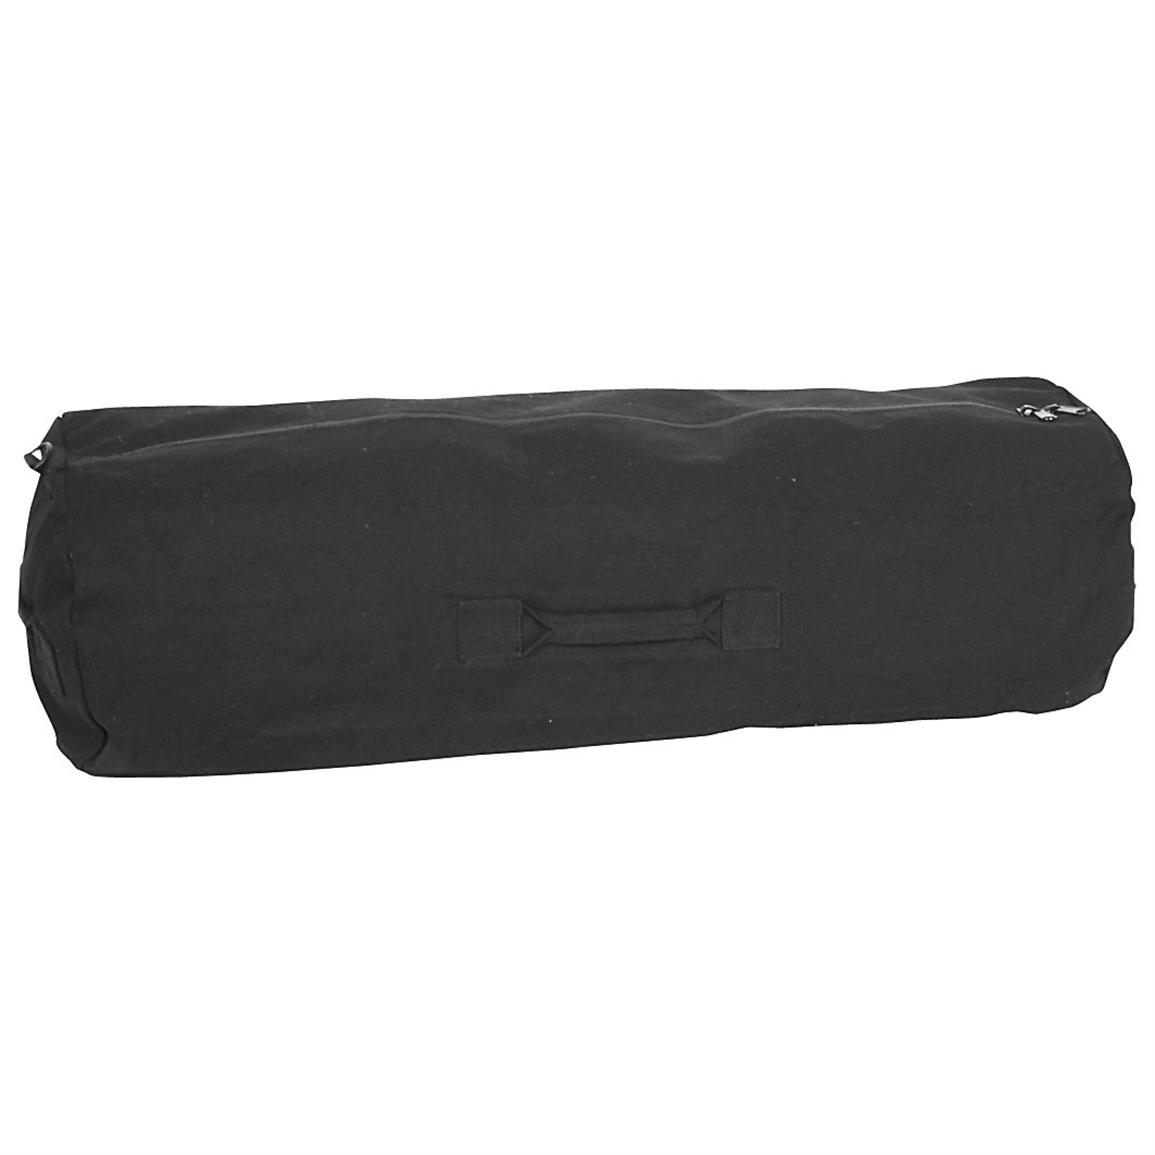 Fox Outdoor™ GI-style Duffel Bag, Black